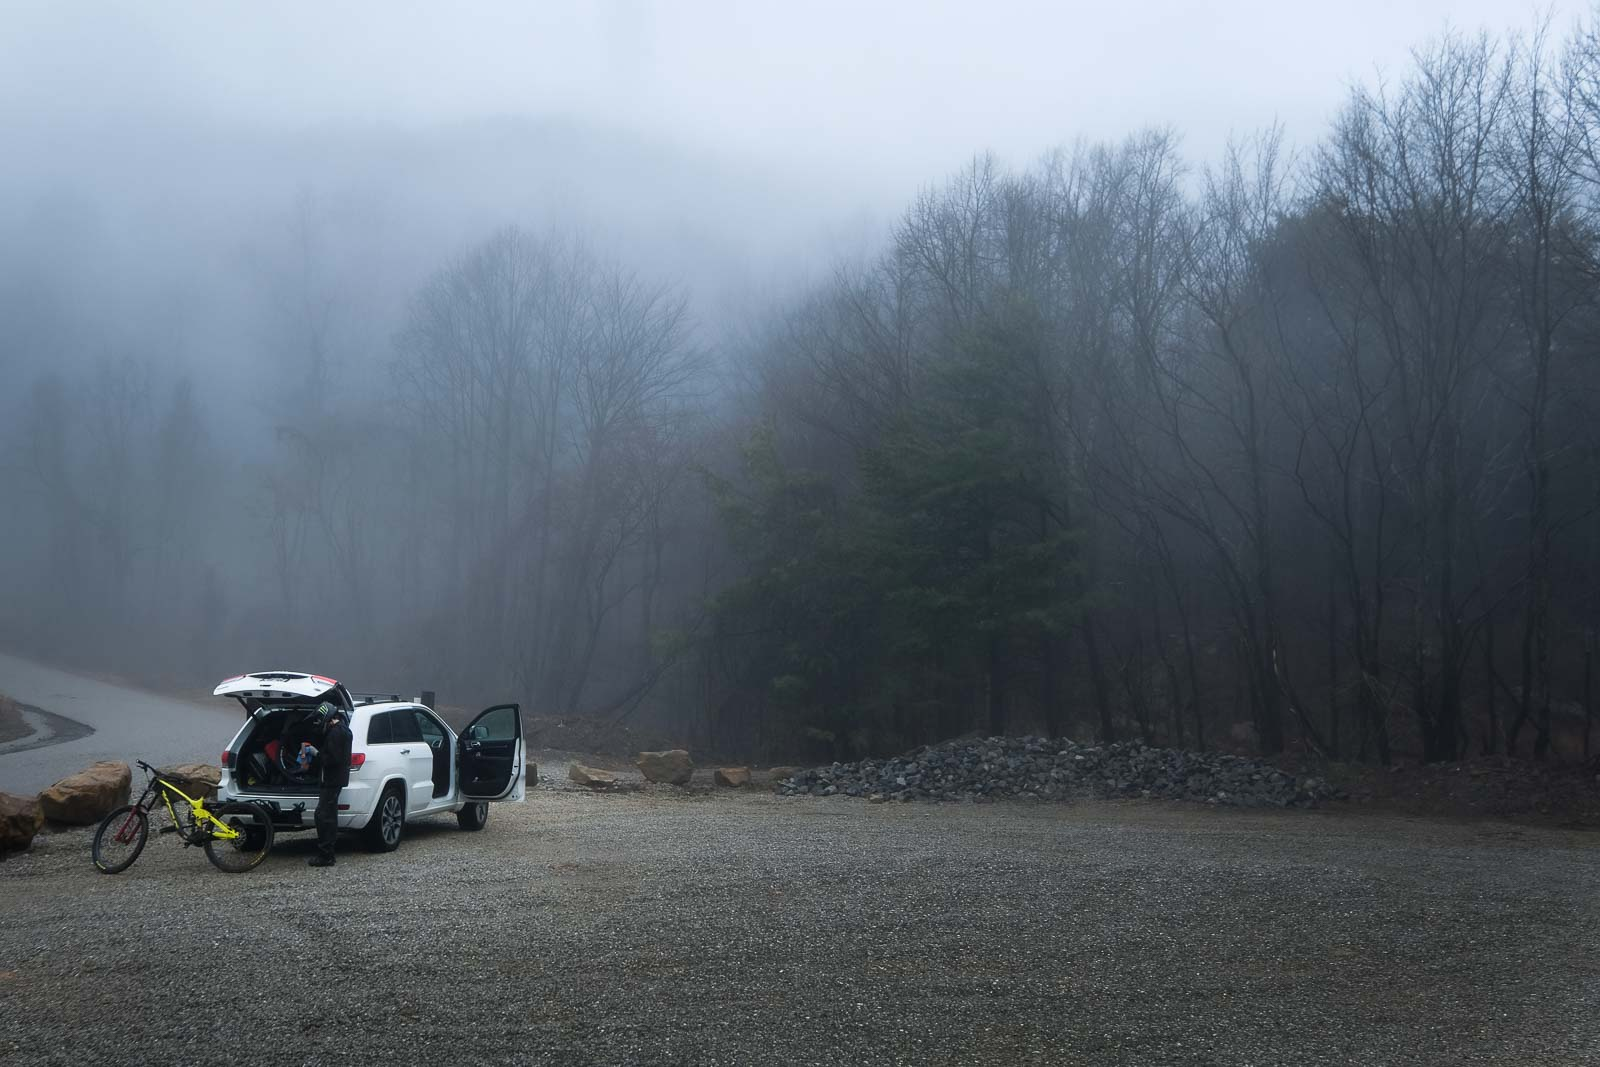 GiA car parked on a foggy road: how to build a photography portfolio